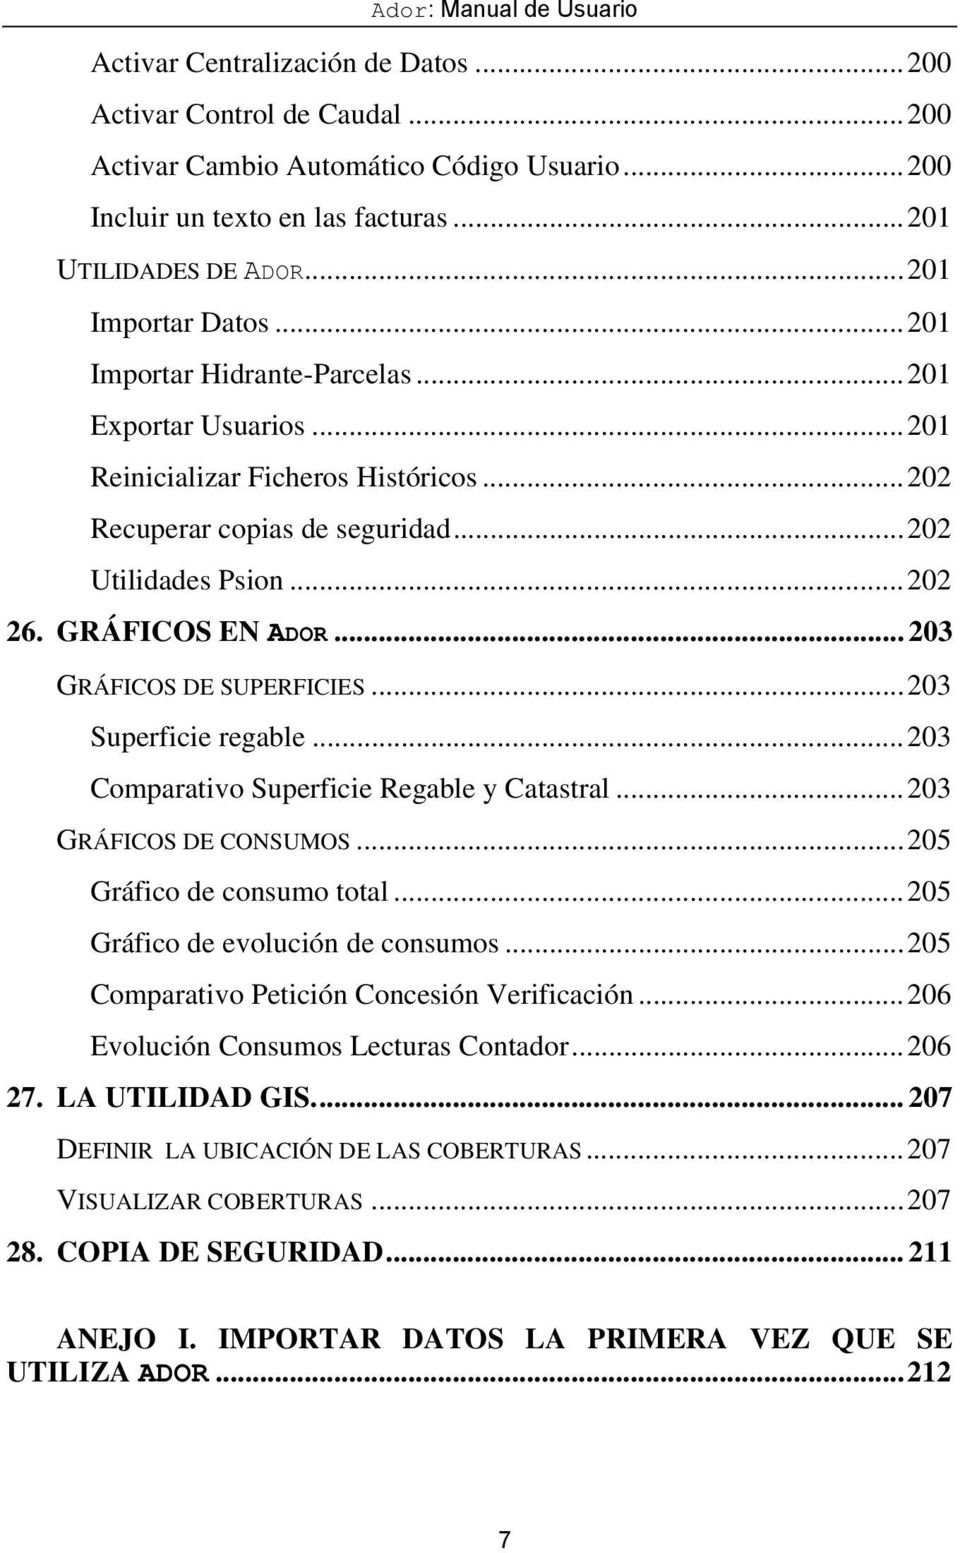 .. 203 GRÁFICOS DE SUPERFICIES...203 Superficie regable...203 Comparativo Superficie Regable y Catastral...203 GRÁFICOS DE CONSUMOS...205 Gráfico de consumo total...205 Gráfico de evolución de consumos.